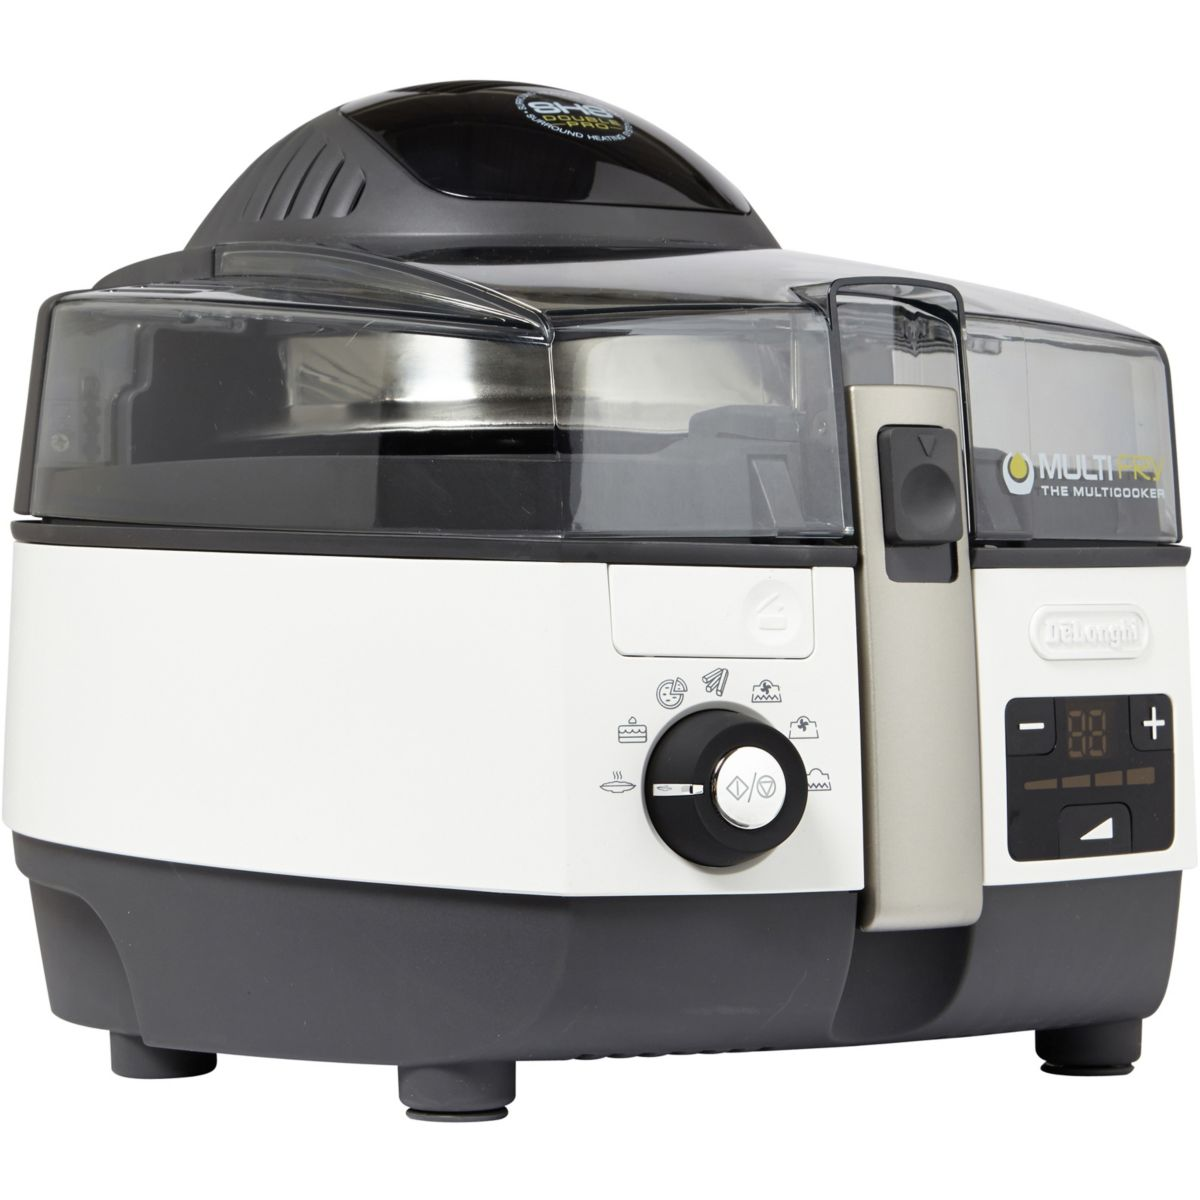 Friteuse DELONGHI FH1394/1 MULTIFRY EXTRA CHEF